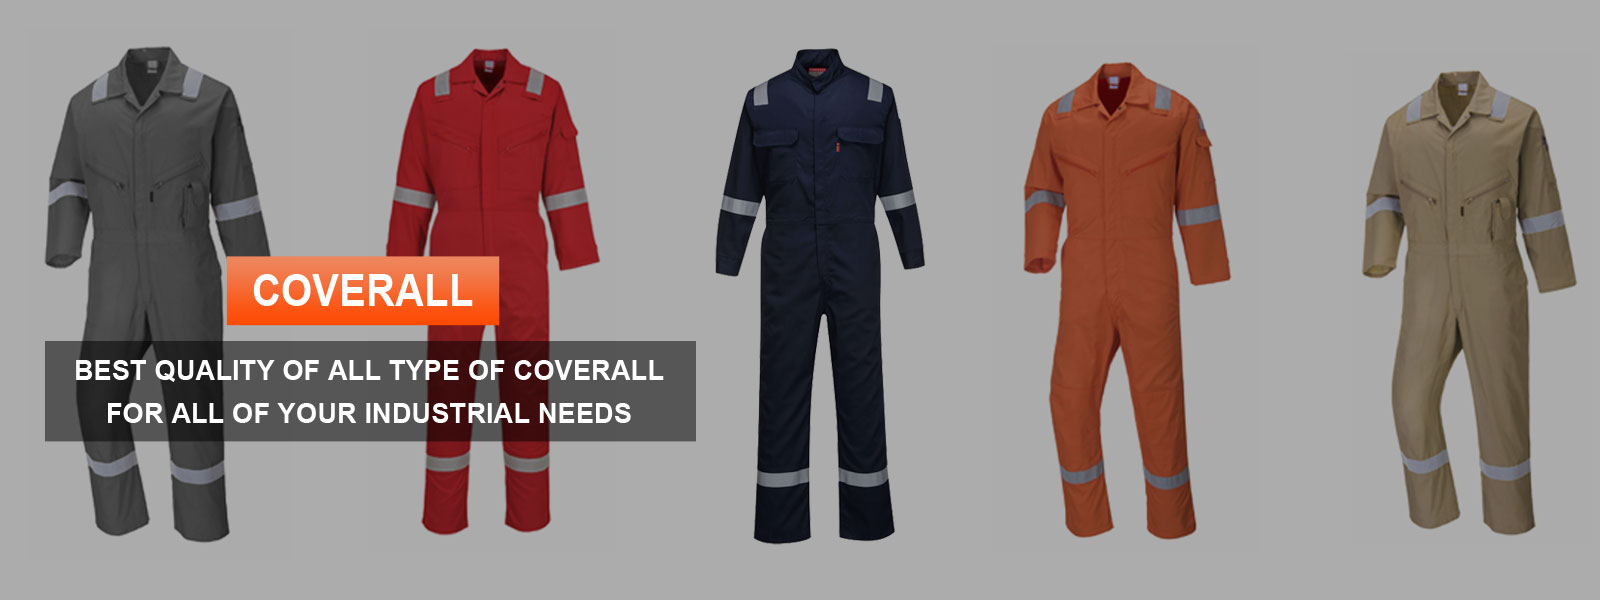 Coverall Manufacturers in Laos